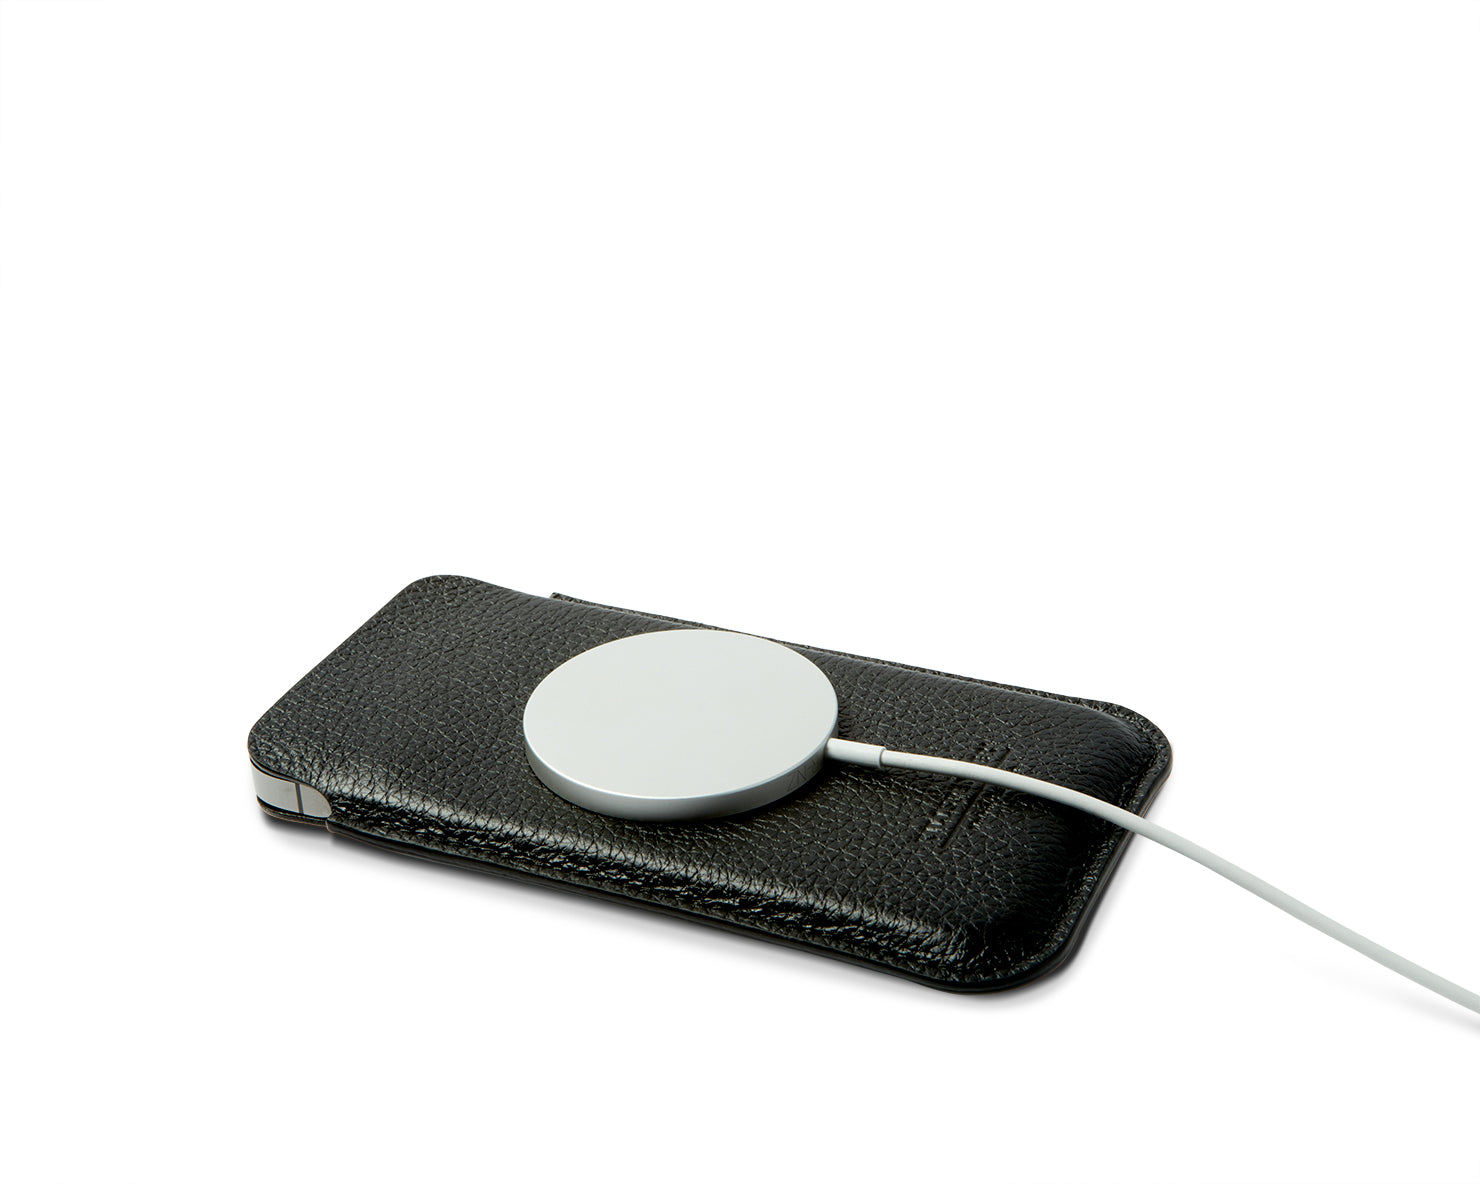 POUCH FOR IPHONE | KILLSPENCER® - Black Leather